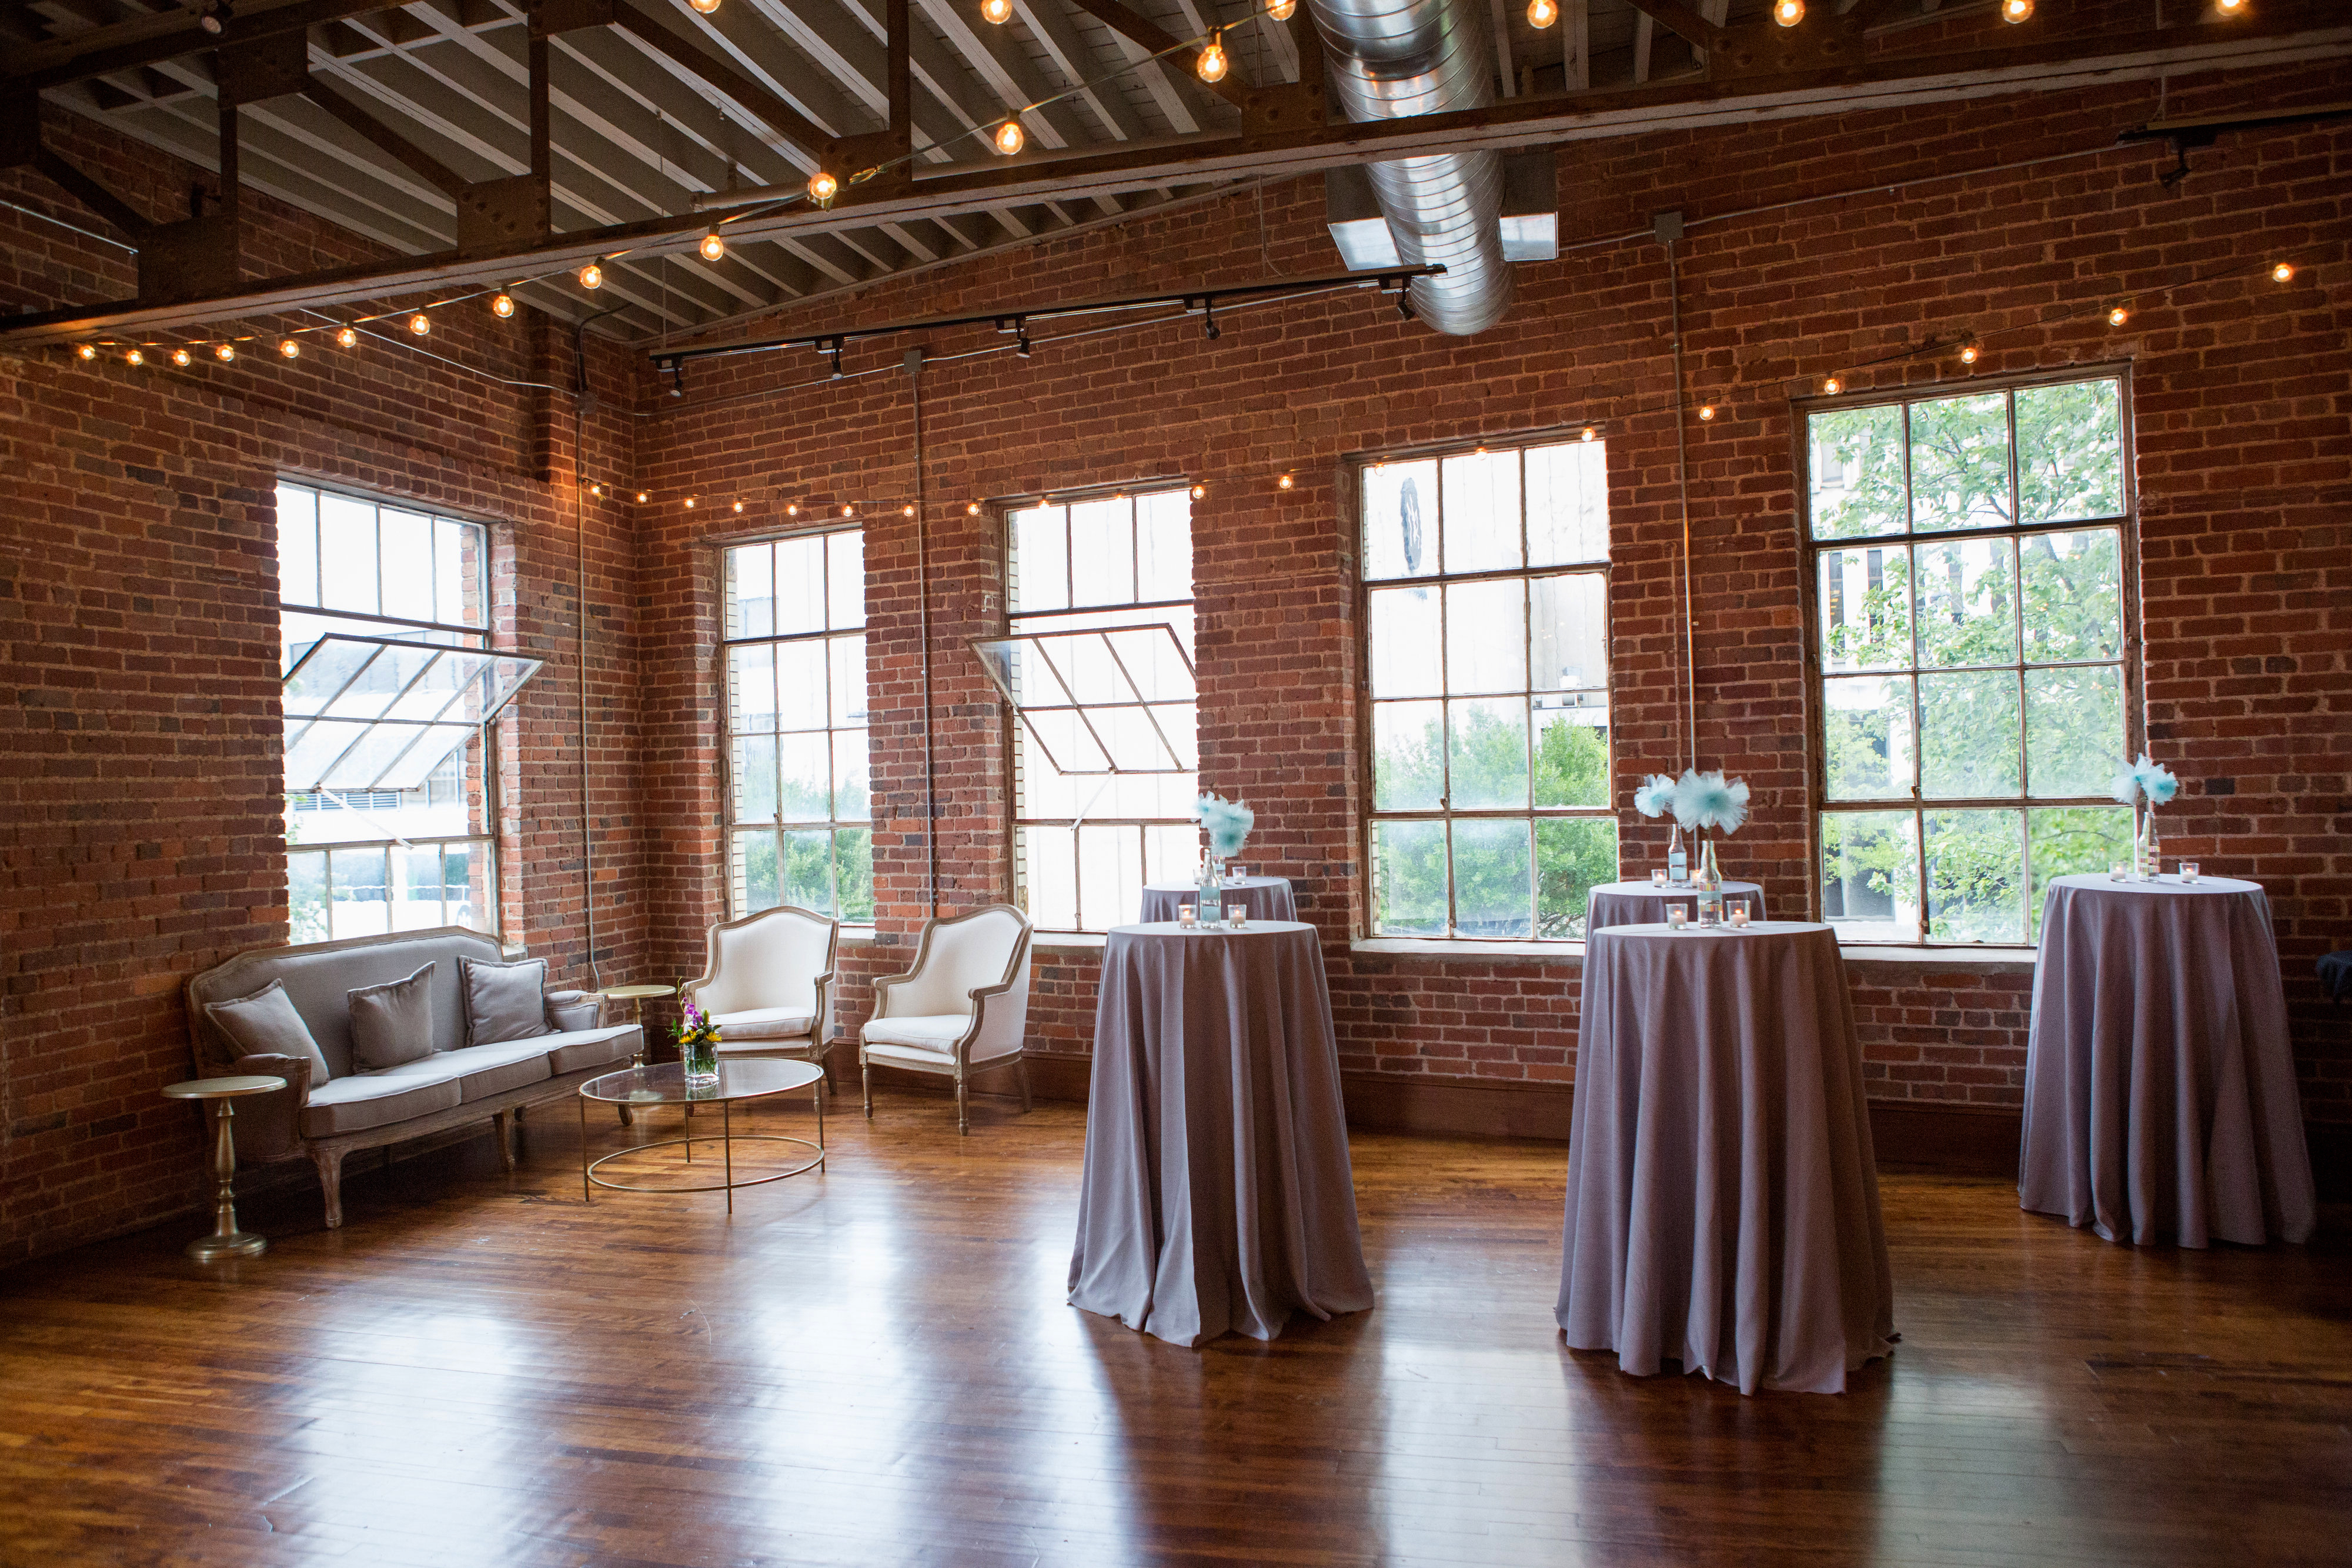 Greenville Event Space Photos | The Upper Room Greenville